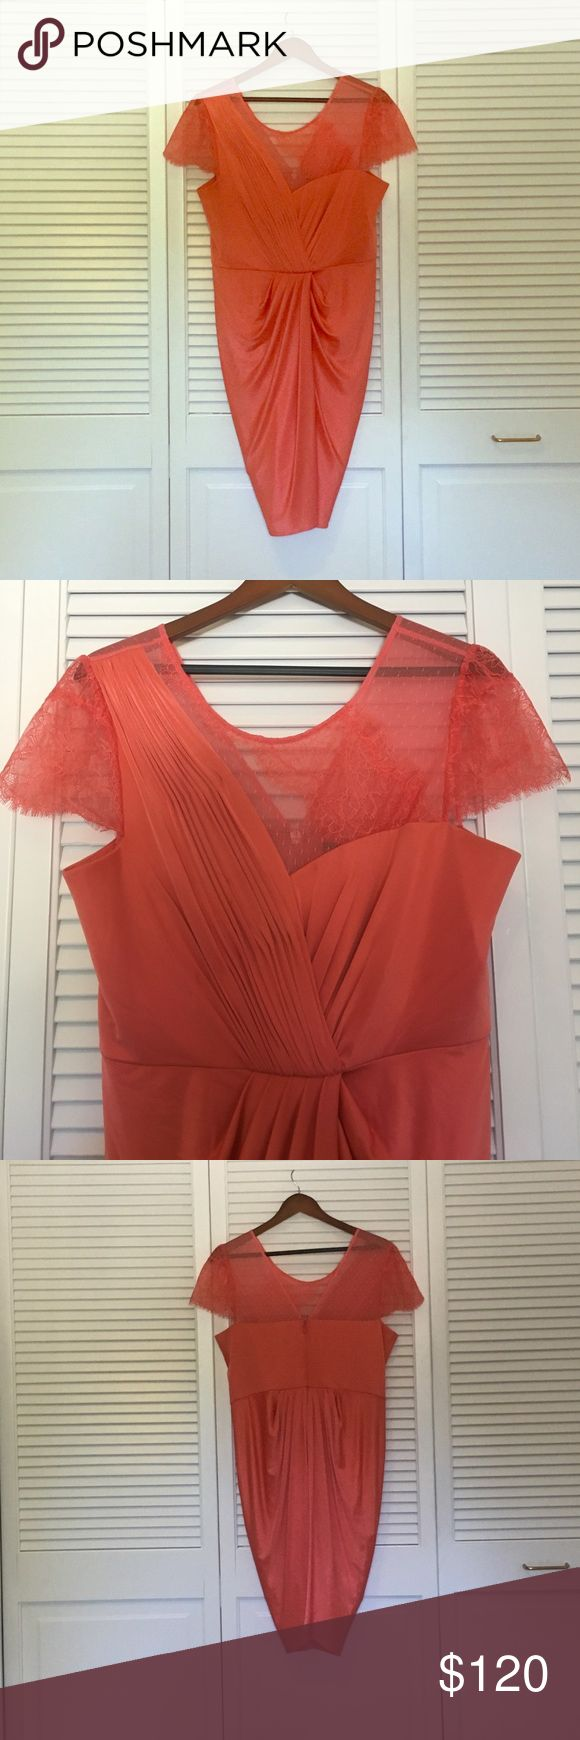 CORAL COCKTAIL DRESS W LACE & GRECIAN DRAPING 96% ACETATE 4% SPANDEX, LINNED, LACE DETAIL, GREAT CONDITION-WORK ONCE BCBGMaxAzria Dresses Mini